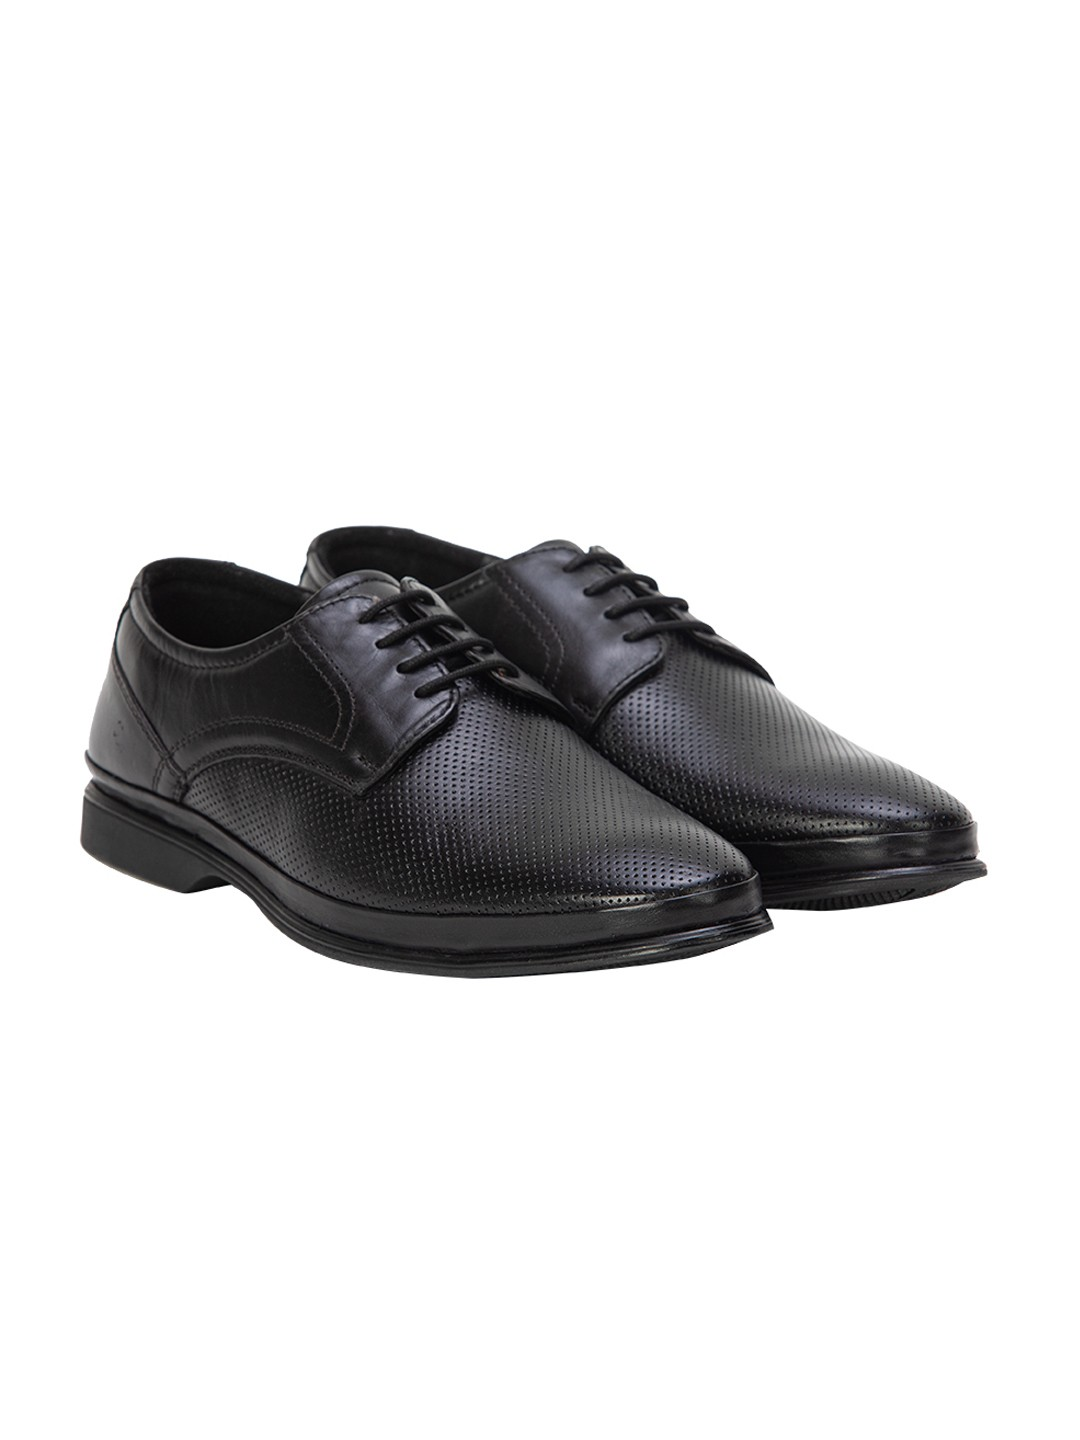 Buy Von Wellx Germany Comfort Coen Black Shoes Online in Agra